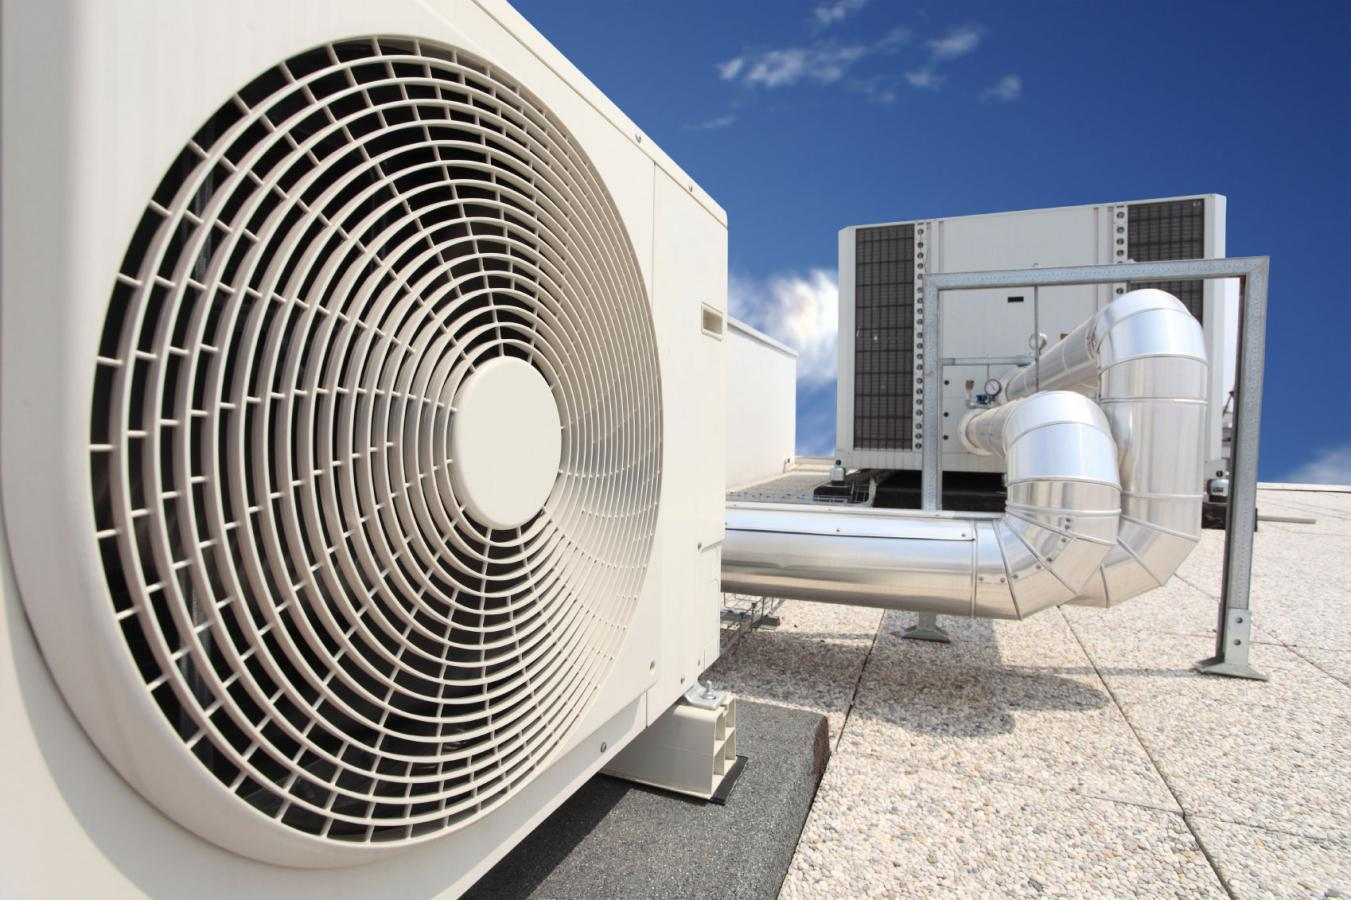 heating and air conditioning service near me